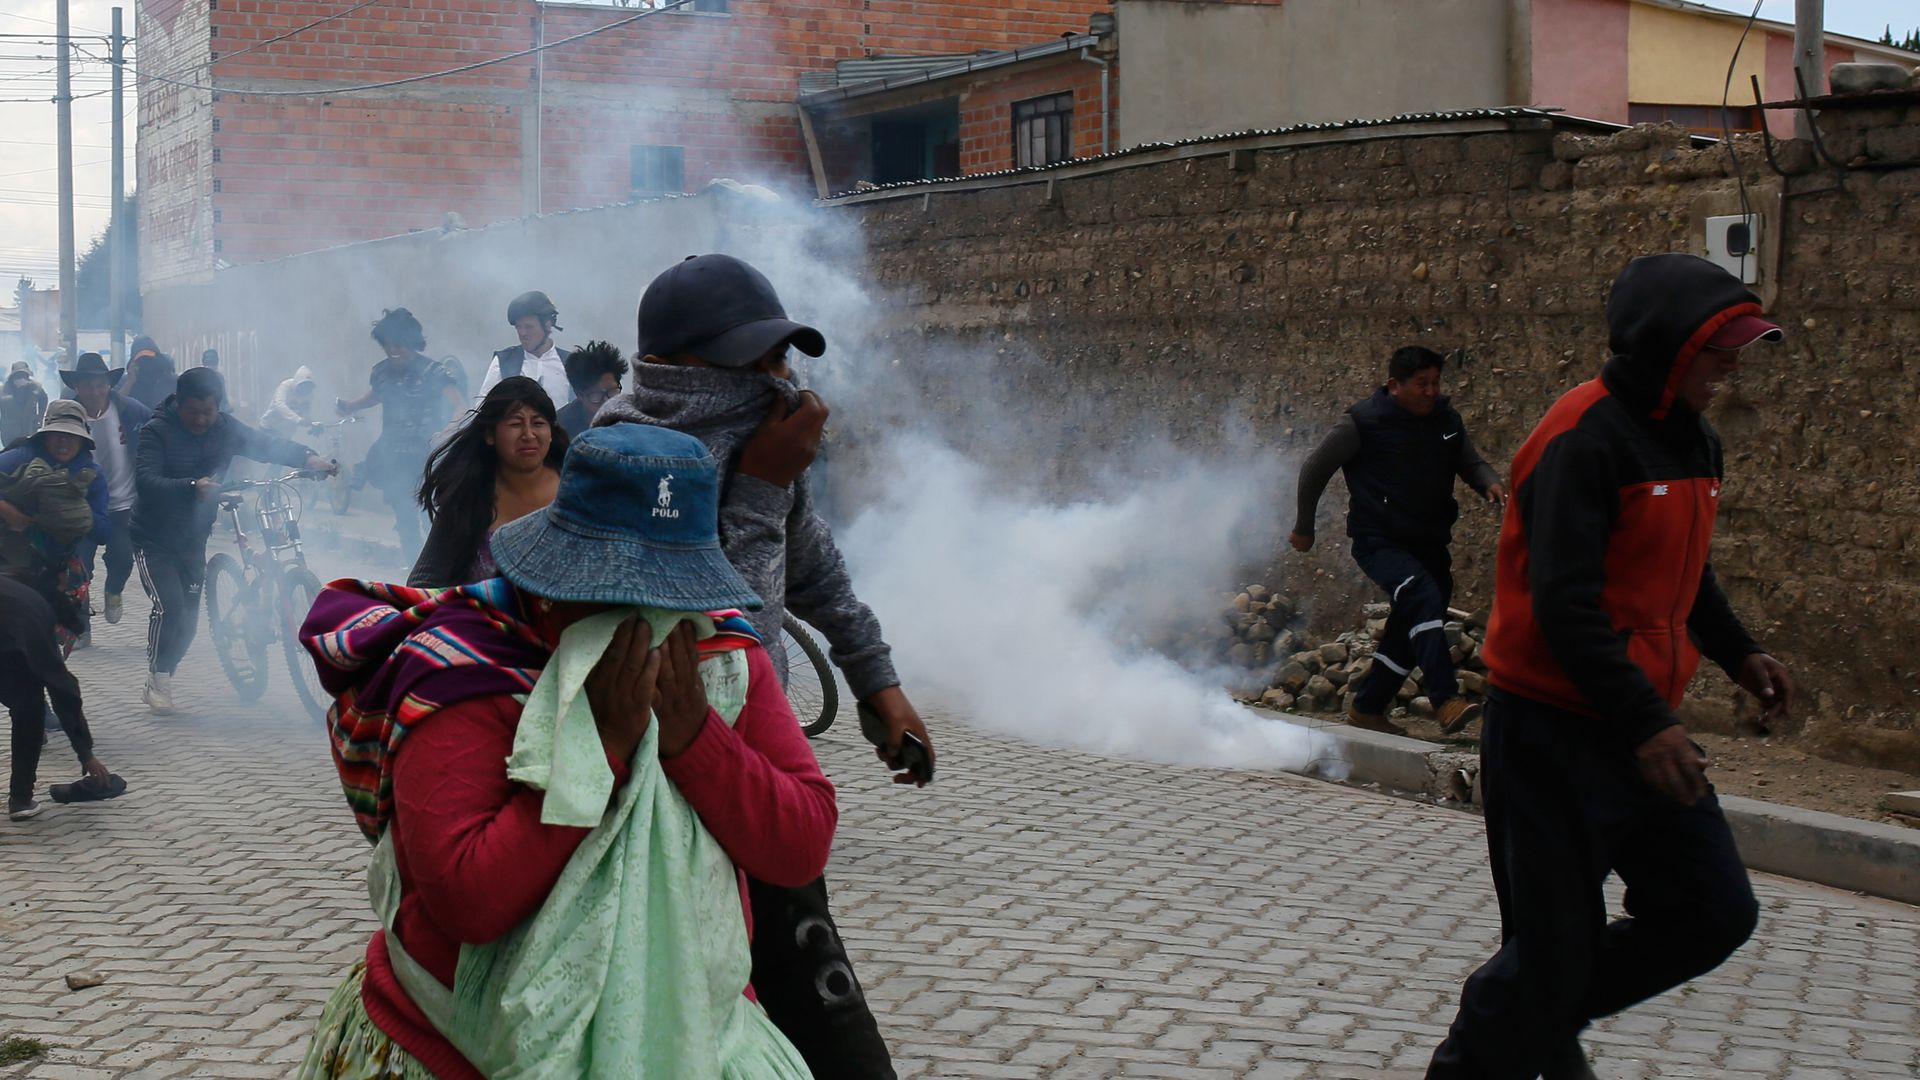 Supporters of Evo Morales run from tear gas as clashing with police during protests on November 19